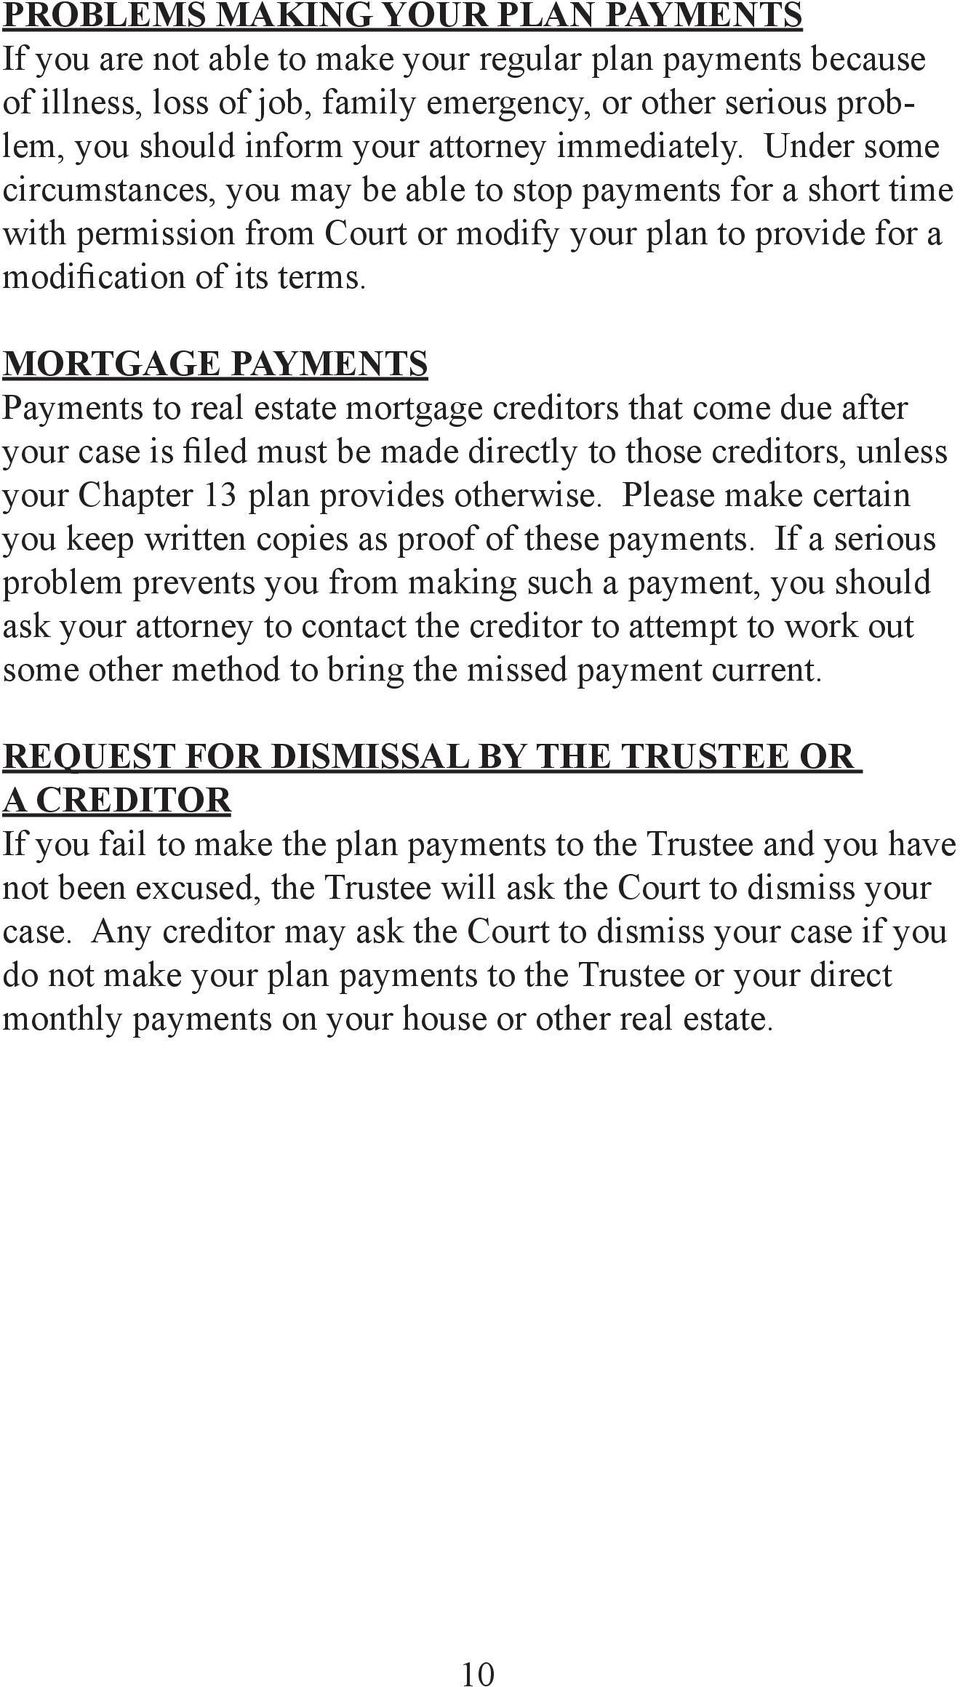 MORTGAGE PAYMENTS Payments to real estate mortgage creditors that come due after your case is filed must be made directly to those creditors, unless your Chapter 13 plan provides otherwise.